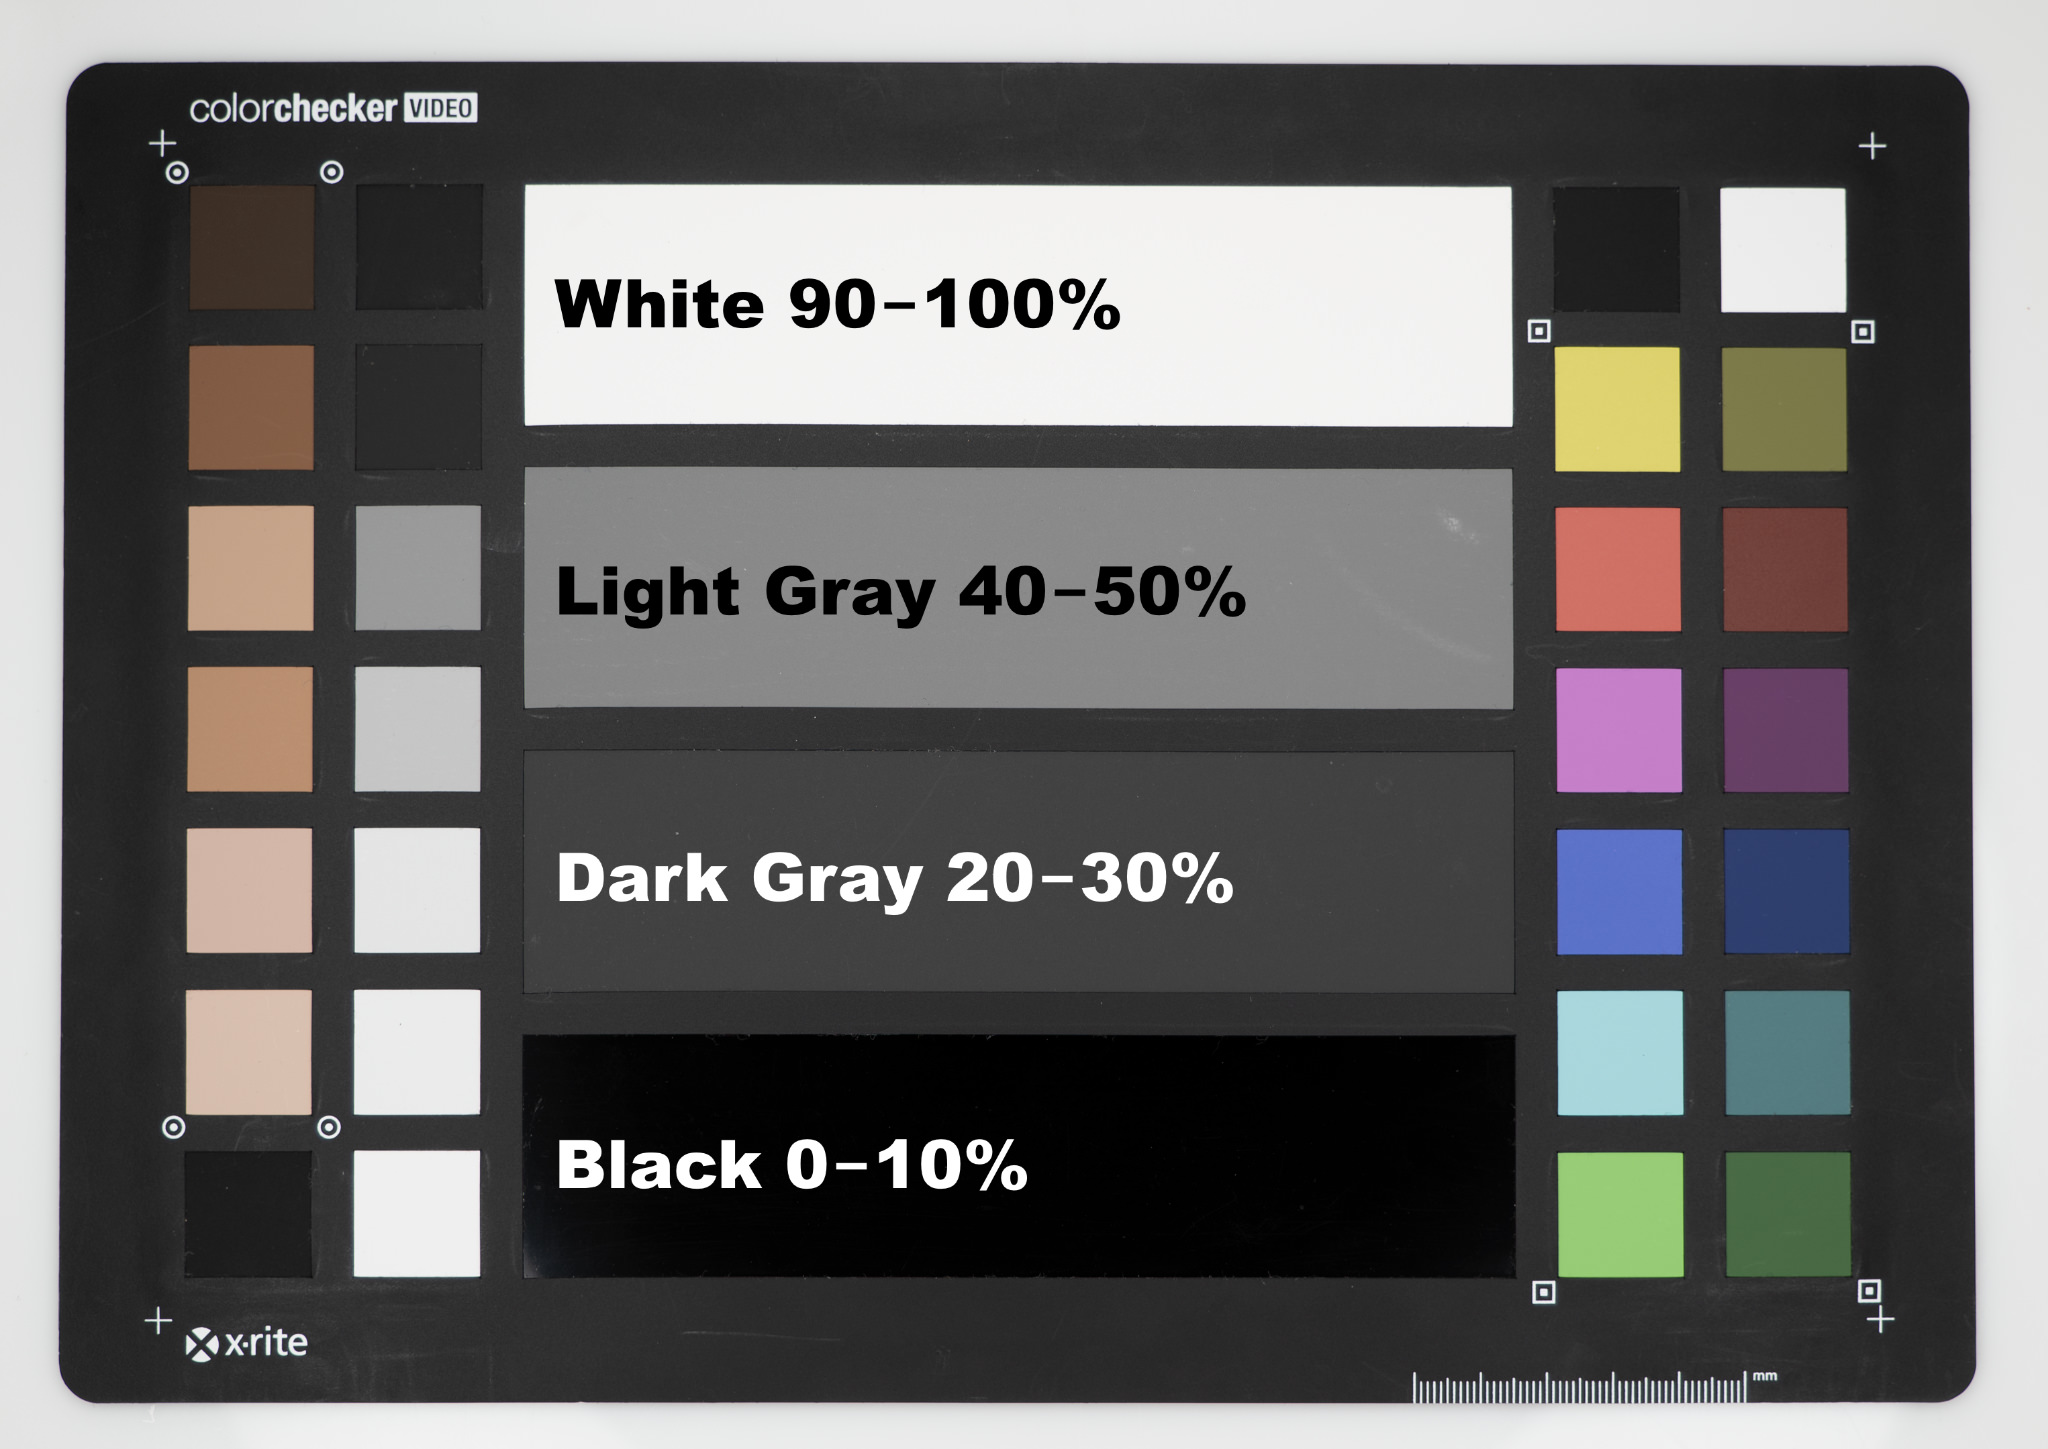 X-Rite Color Checker Video with IRE and % percentage levels. White = 90-100% or 90-100 IRE, Light Grey Gray = 40-50% or 40-50 IRE, Dark Grey Gray = 20-30% or 20-30 IRE, Black = 0-10% or 0-10 IRE